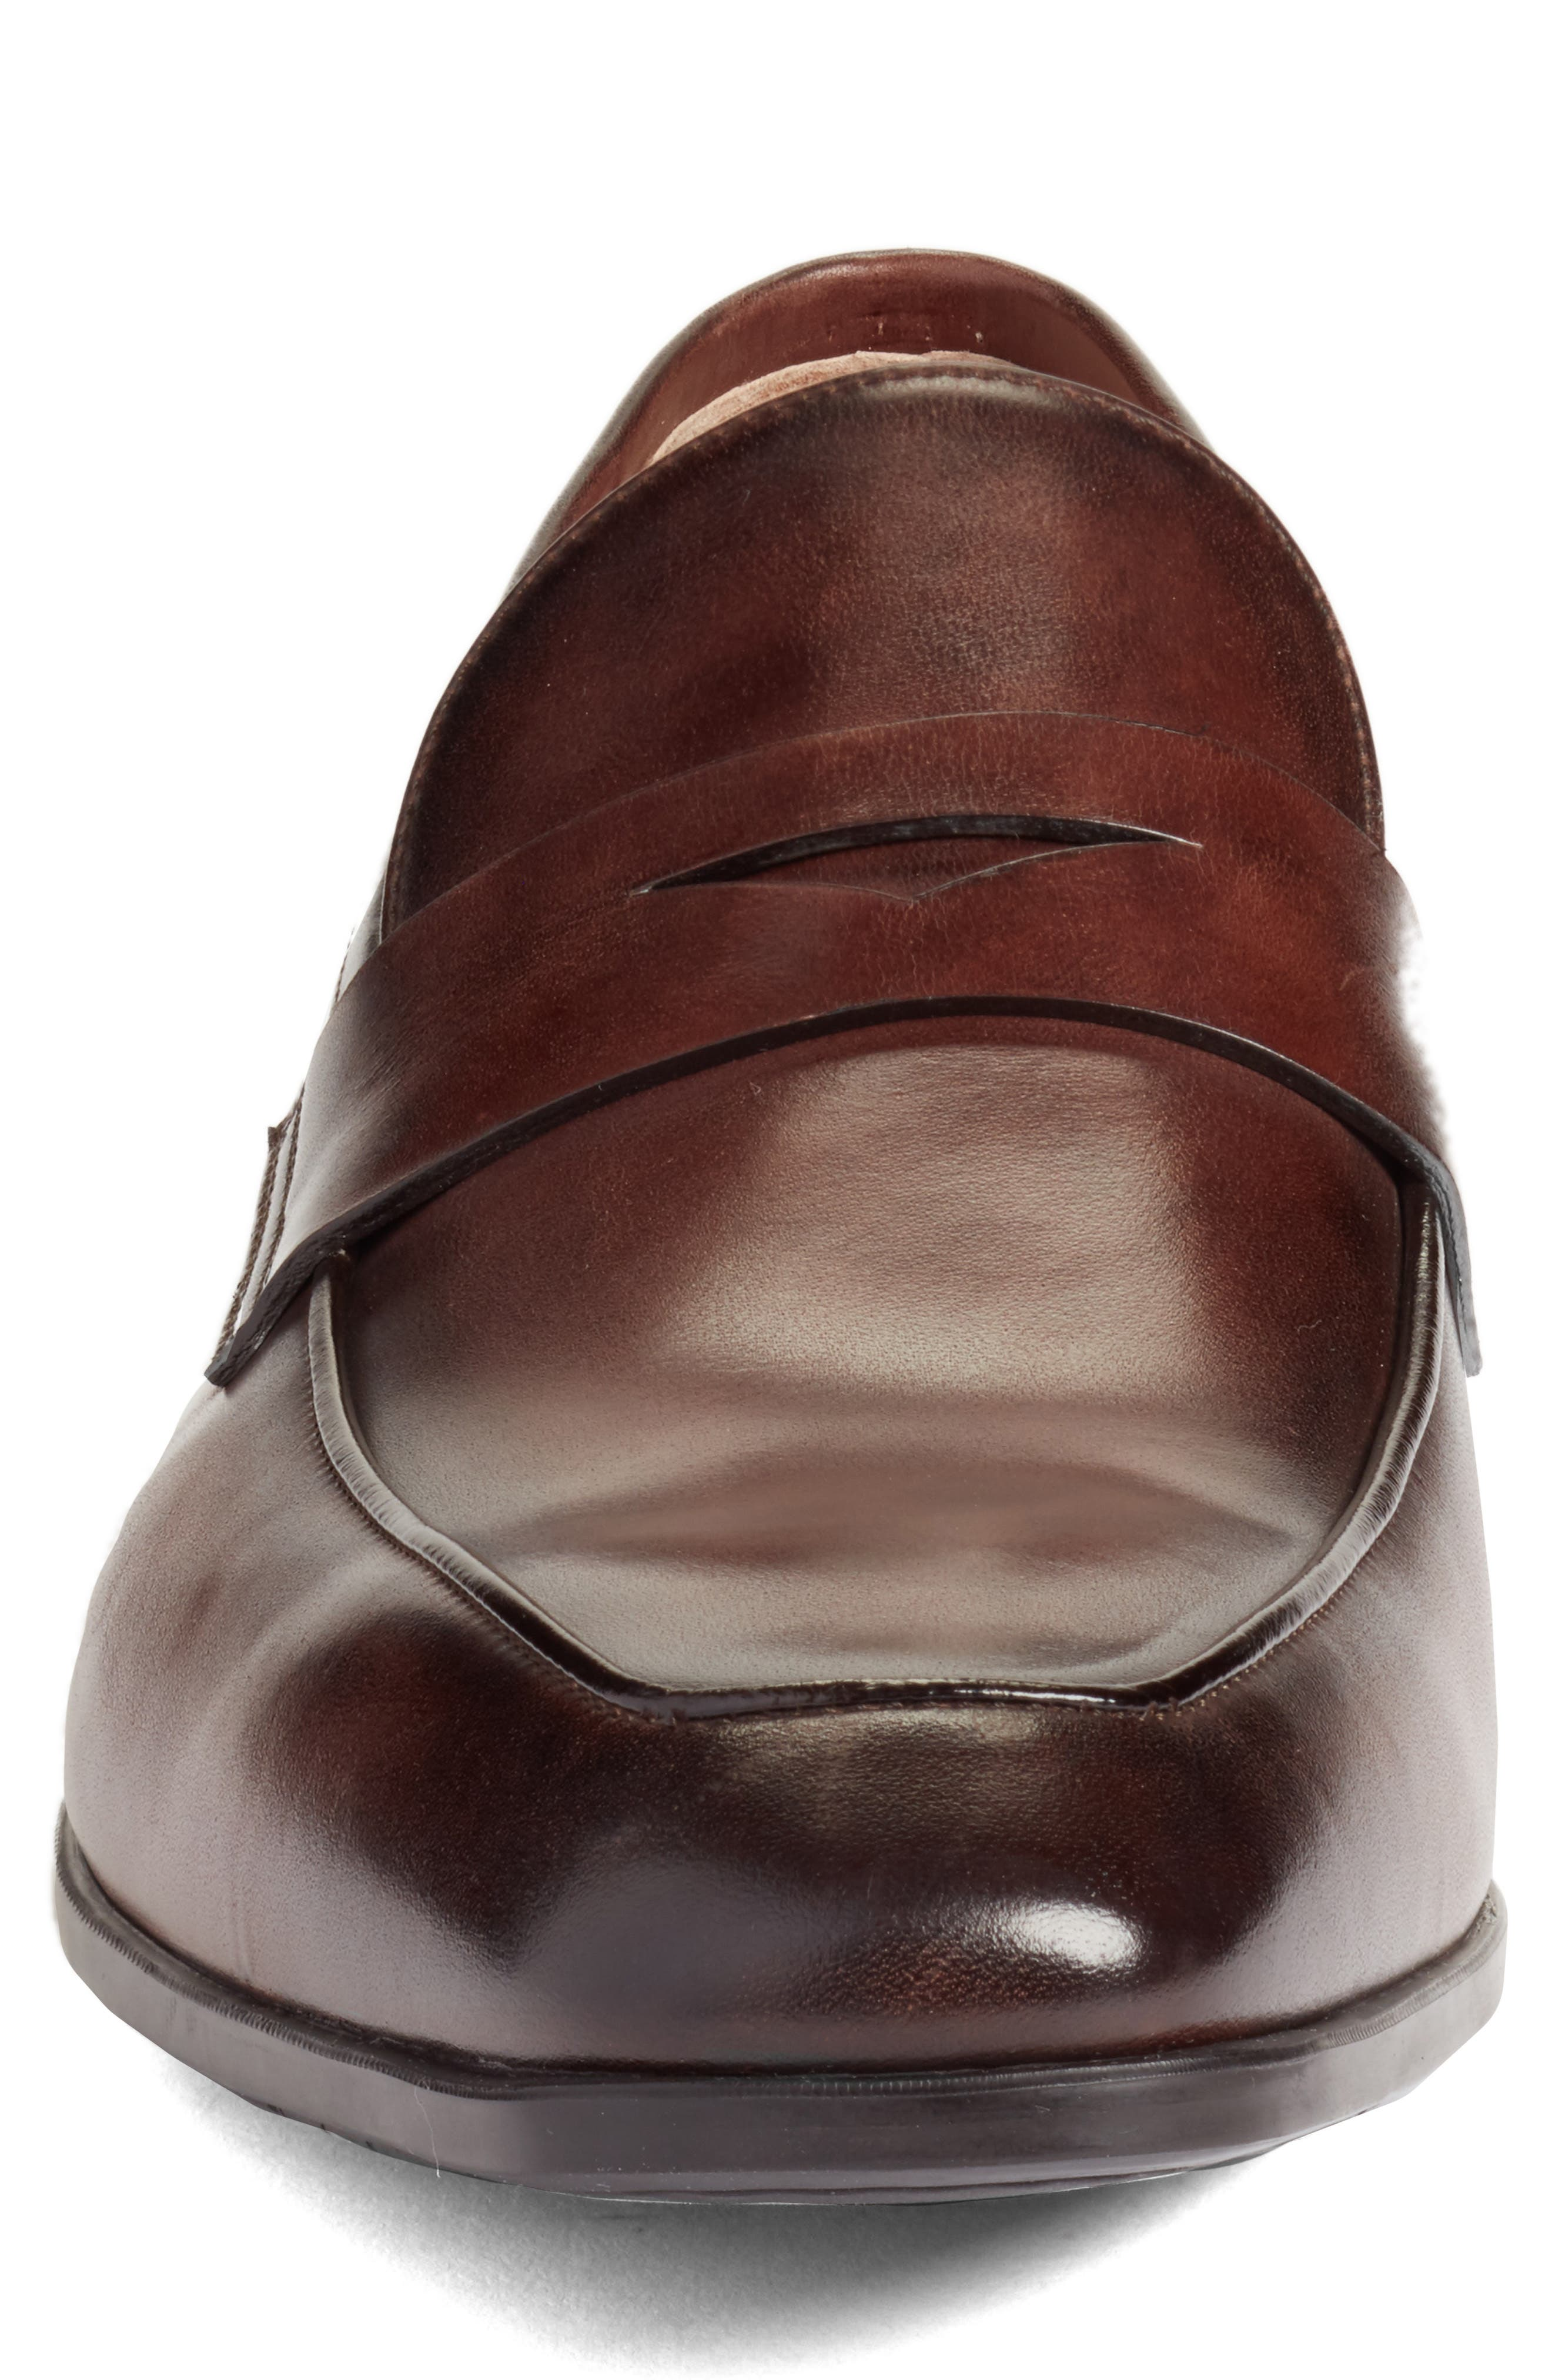 Fisk Square Toe Penny Loafer,                             Alternate thumbnail 4, color,                             BROWN LEATHER